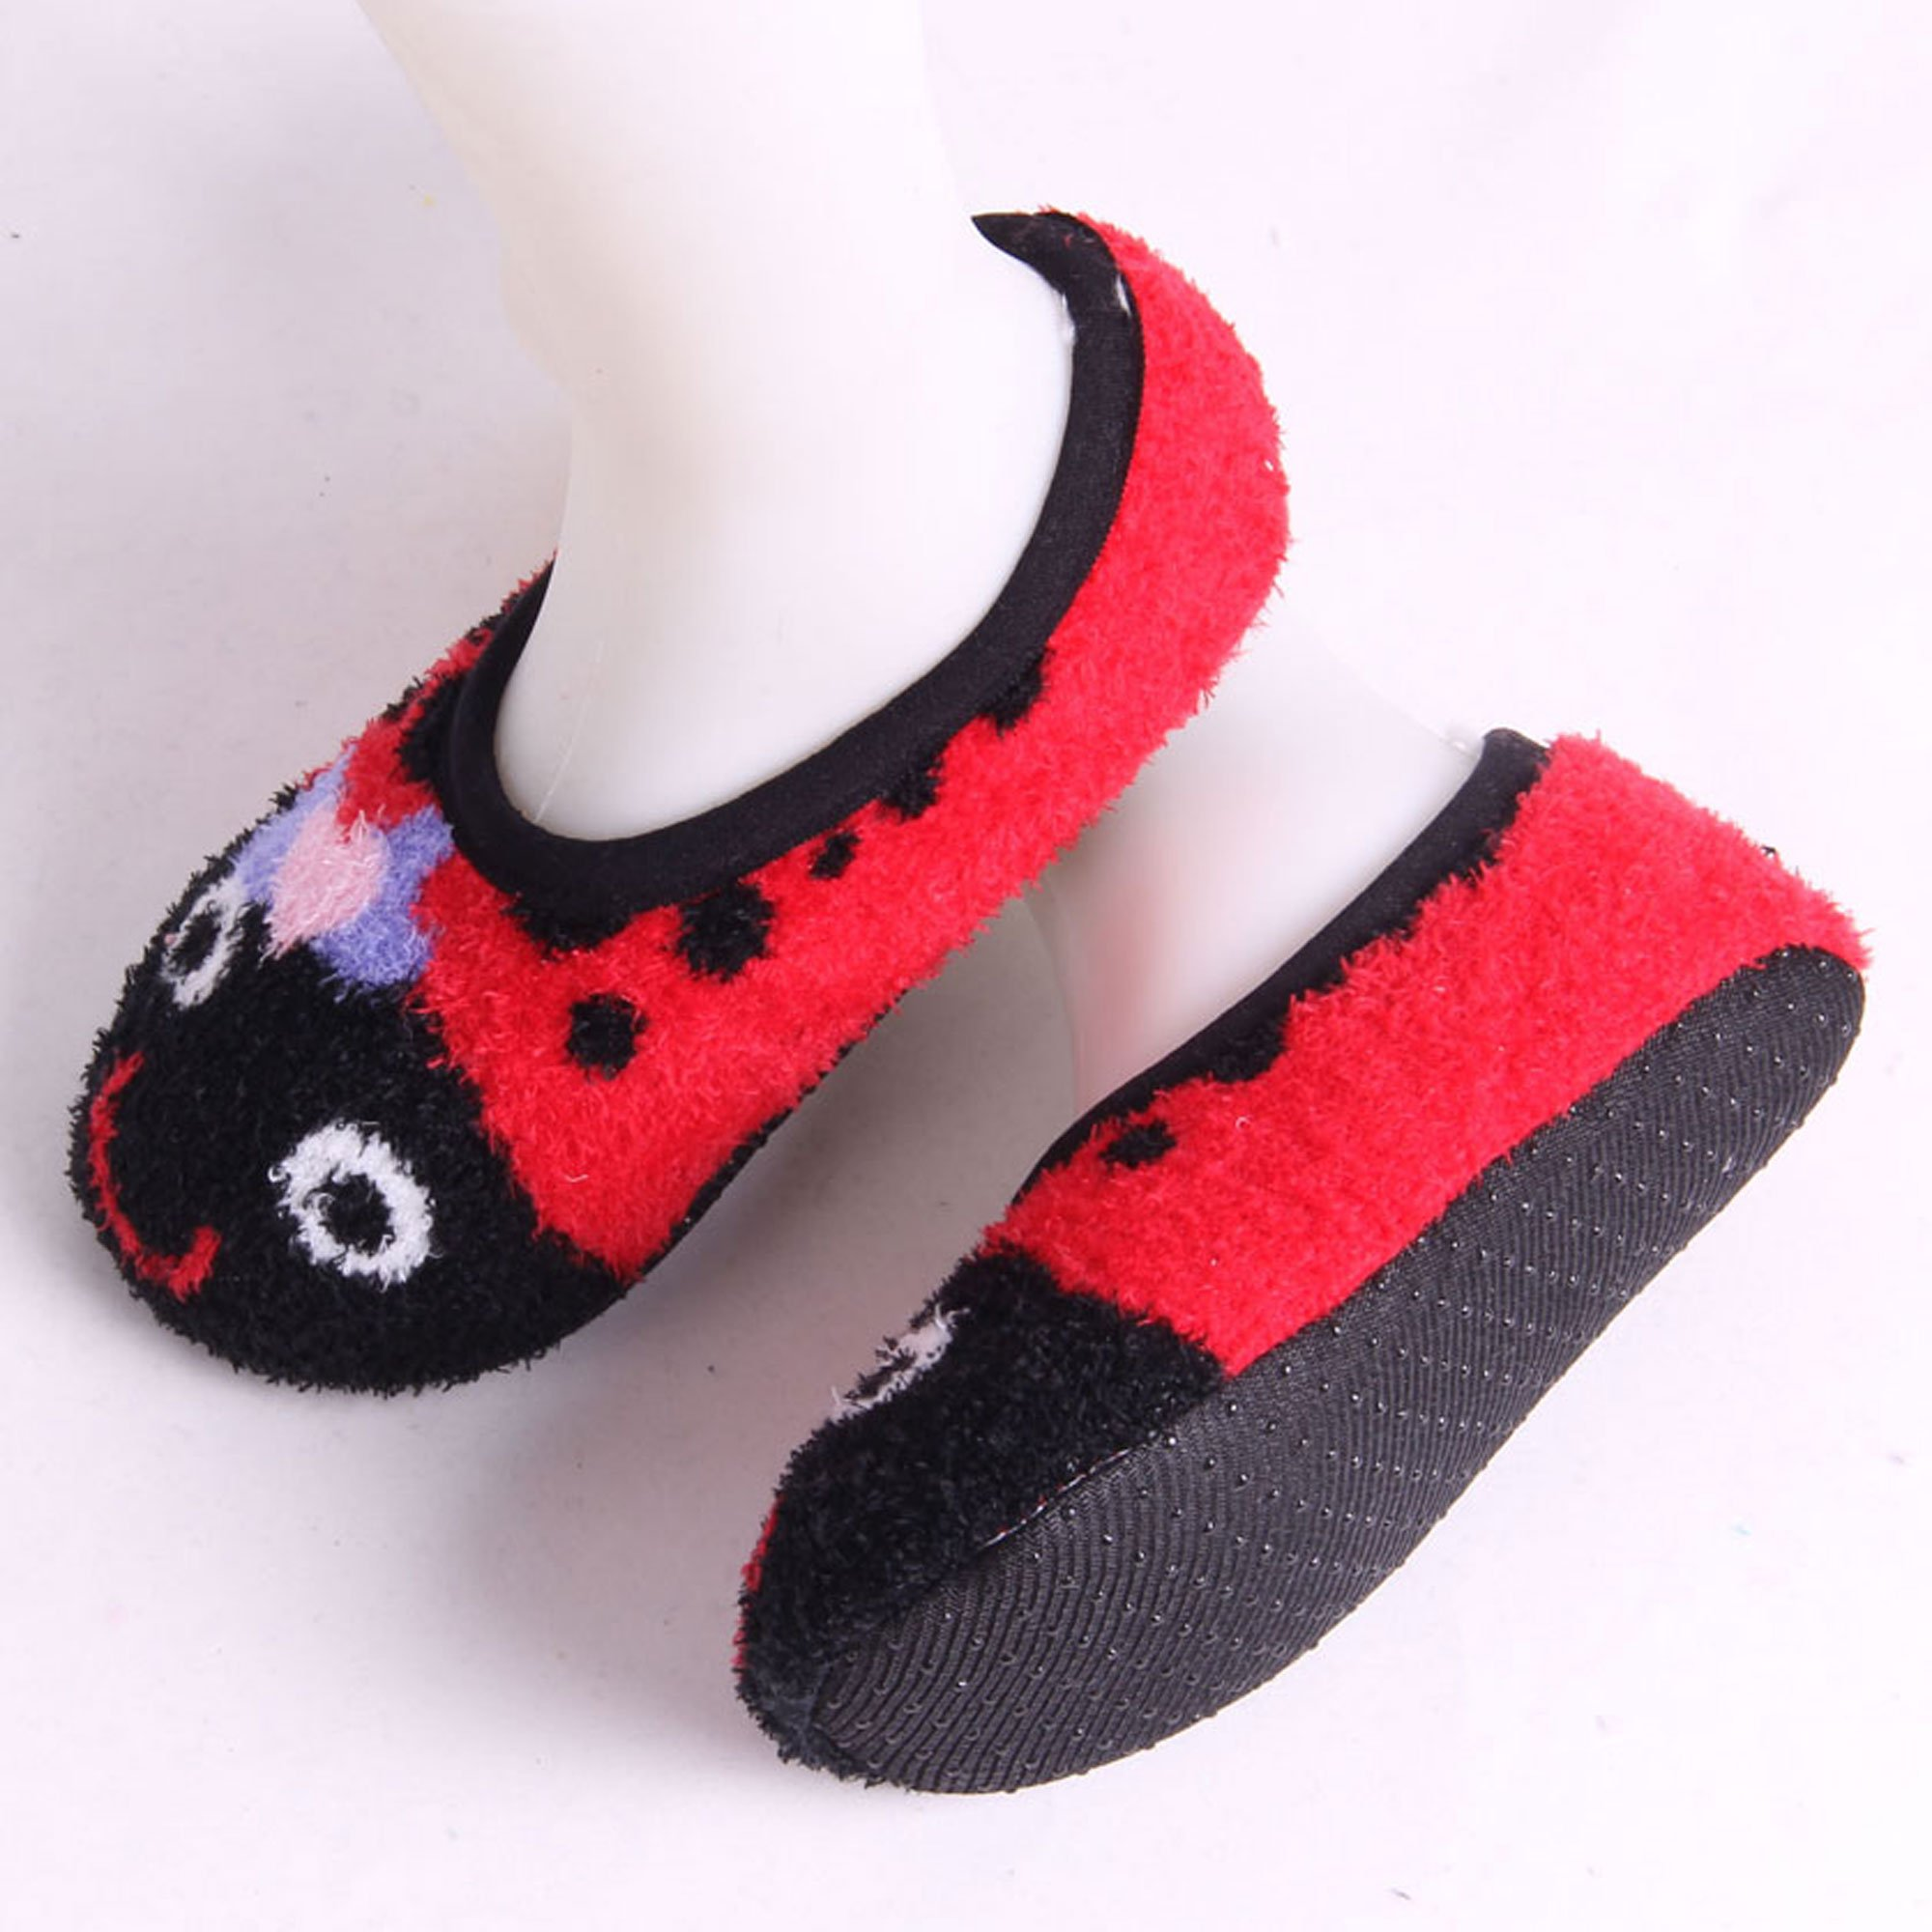 Adult Warm Microfiber Travel Animal Cozy Fuzzy Slippers Non-Slip Lined Socks/Shoes - Lady Bug (D), 3 Pairs by BambooMN (Image #2)